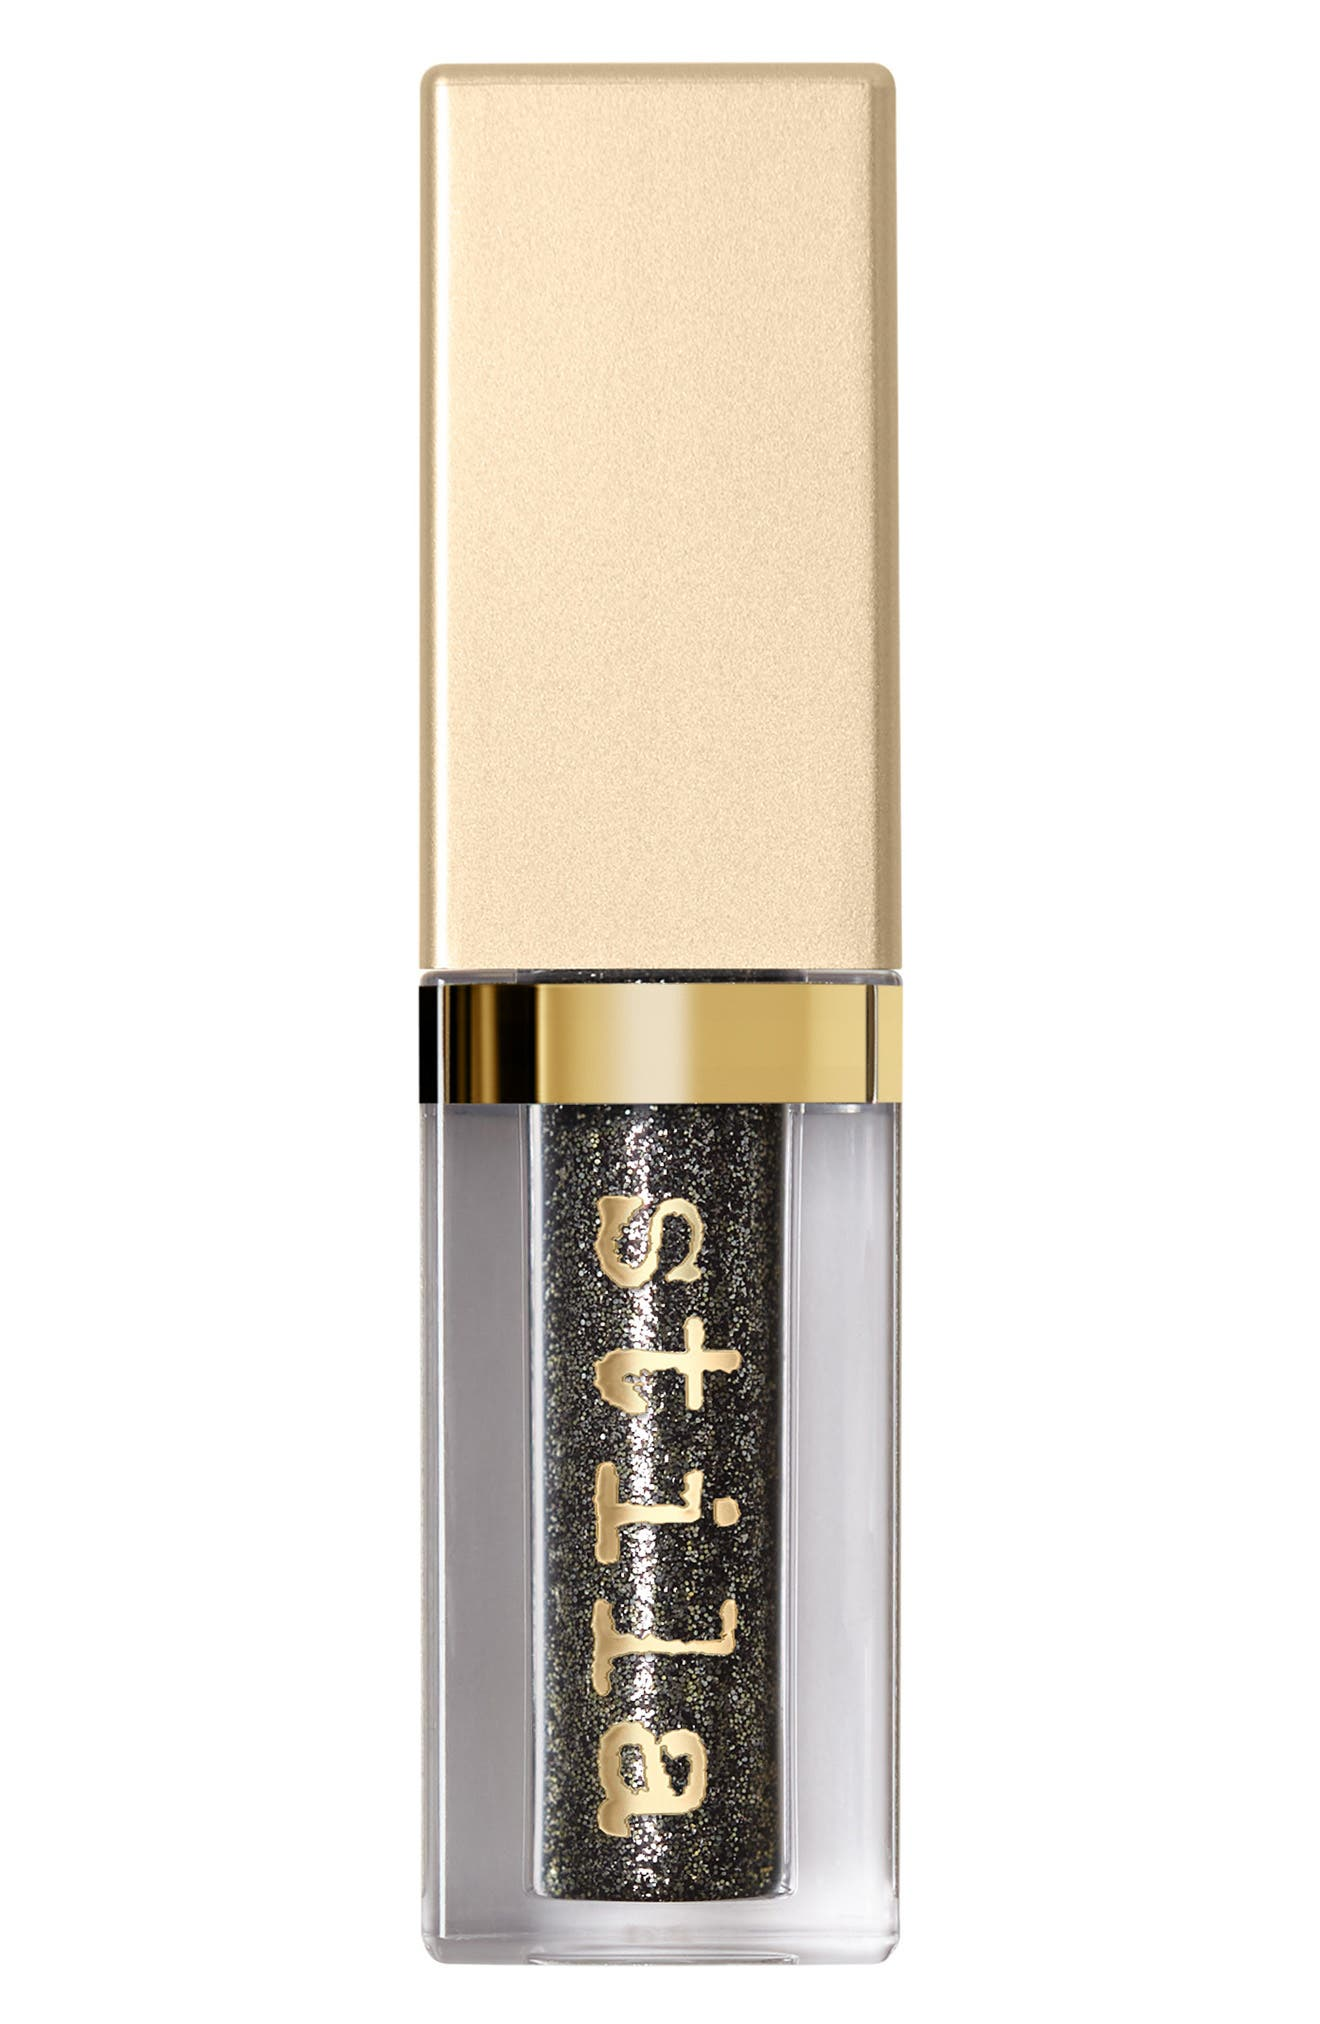 Magnificent Metals Glitter & Glow Liquid Eyeshadow,                             Main thumbnail 1, color,                             MOLTEN MIDNIGHT